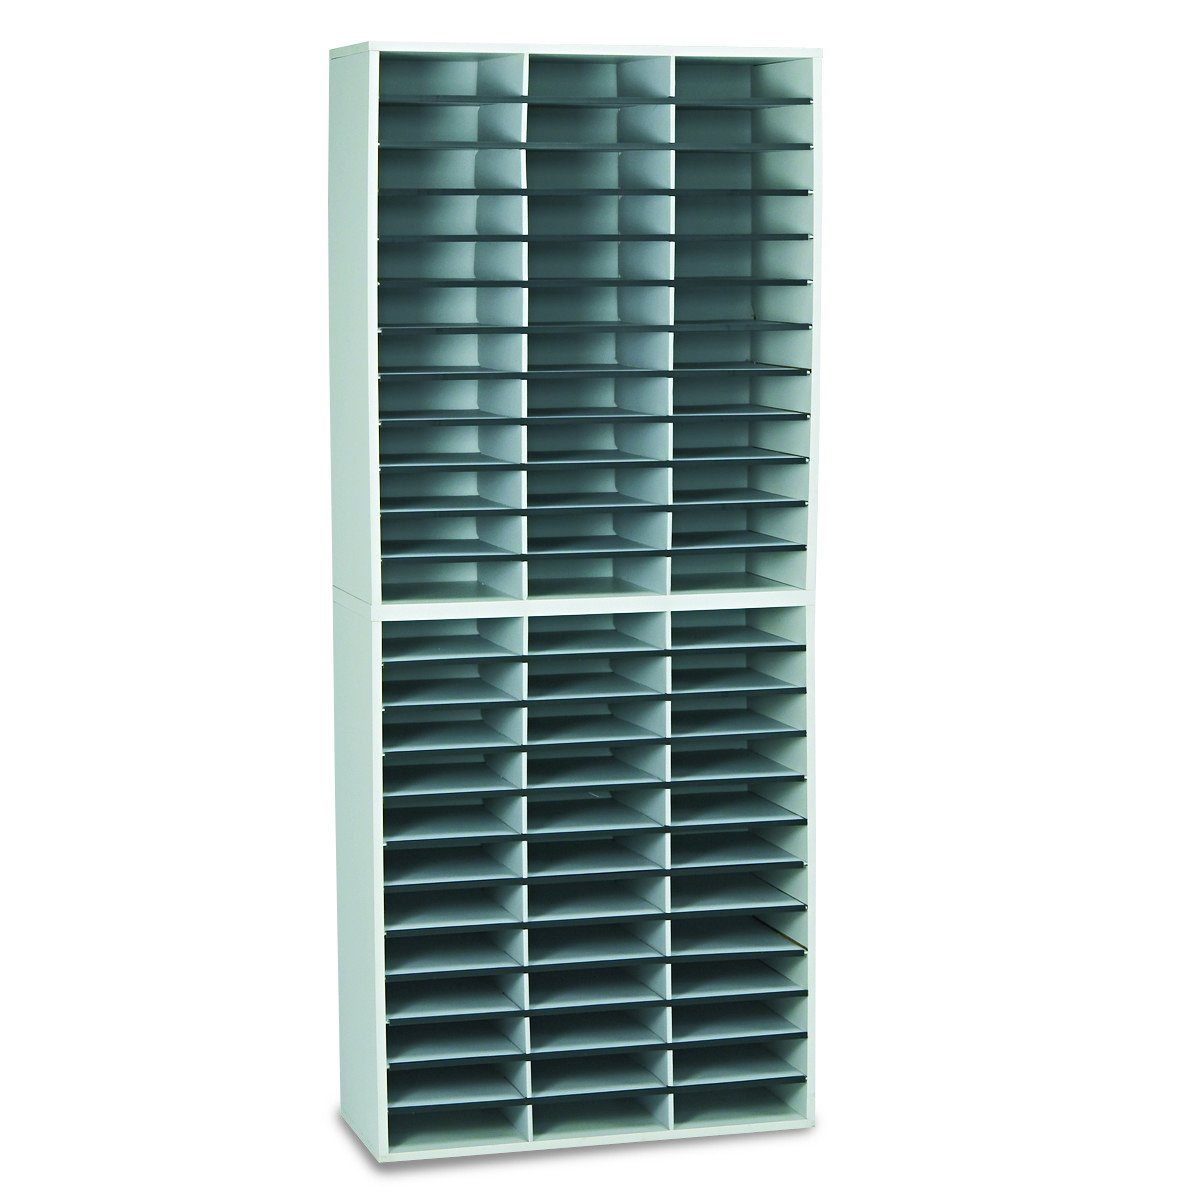 Fellowes 25121 Literature Organizer, 72 Letter Sections, 29 x 11 7/8 x 69 1/8, Dove Gray